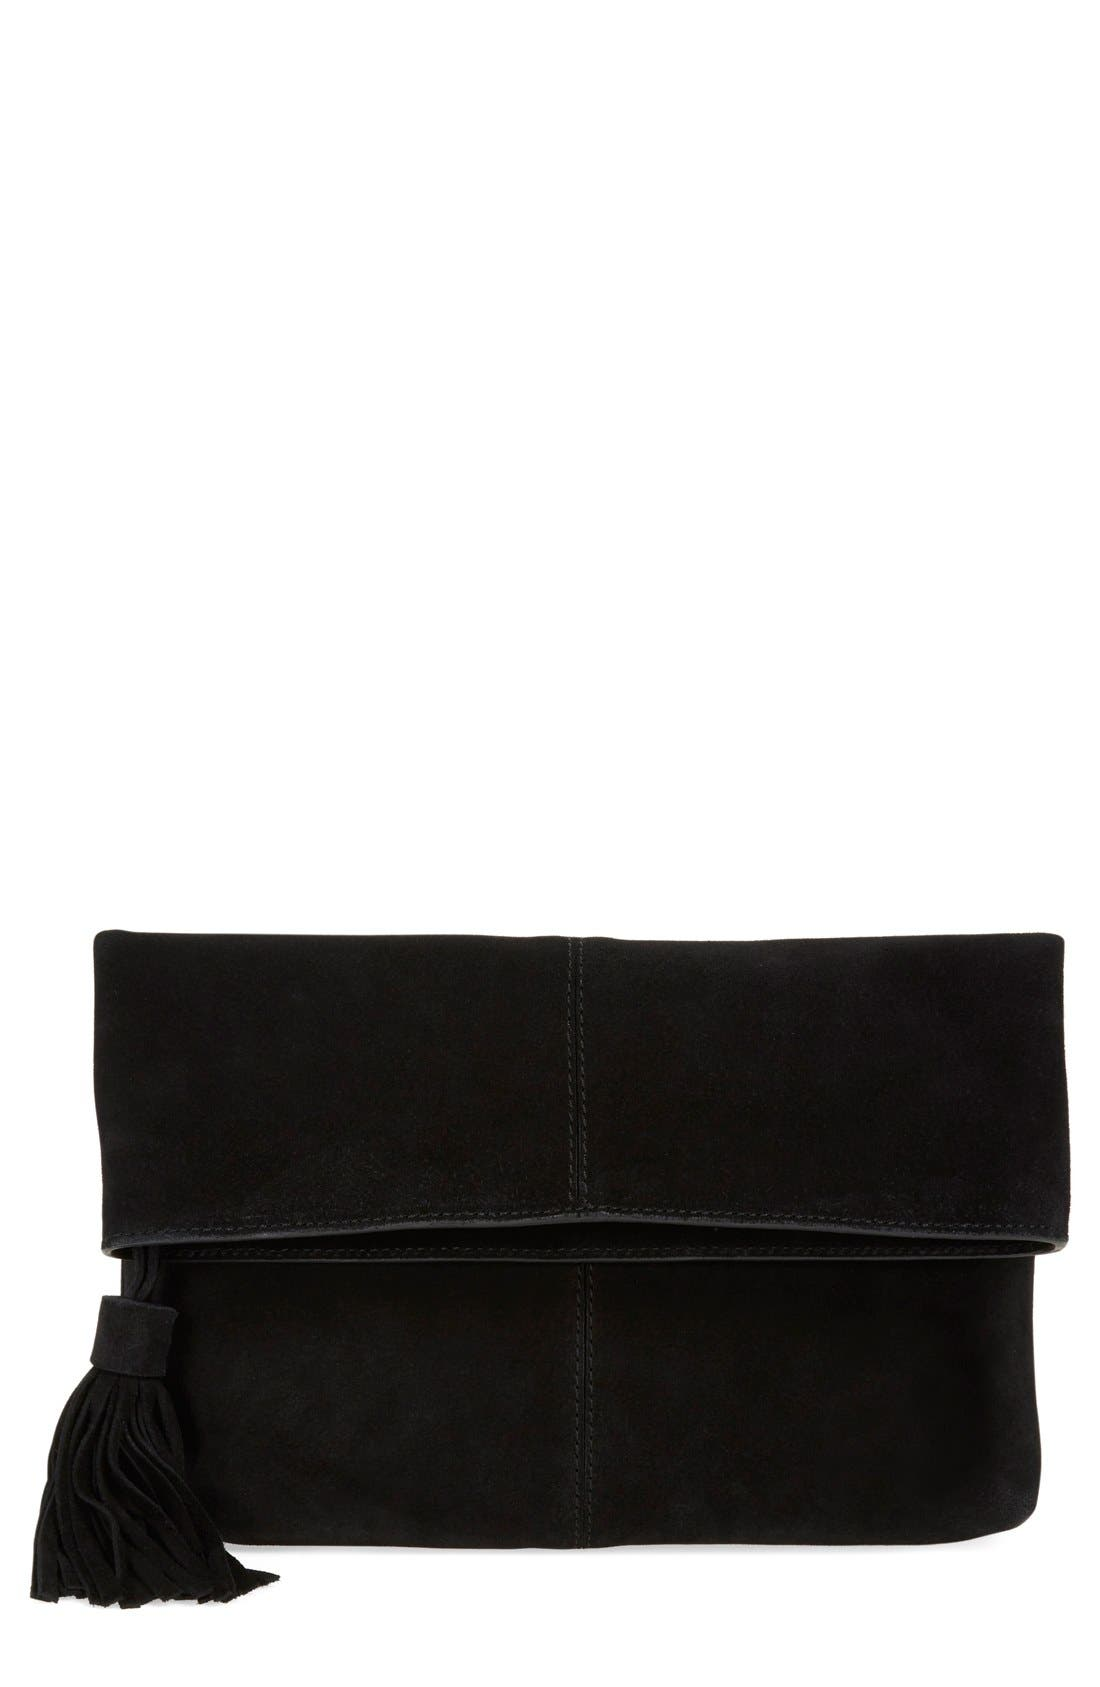 Alternate Image 1 Selected - Leith Suede Clutch